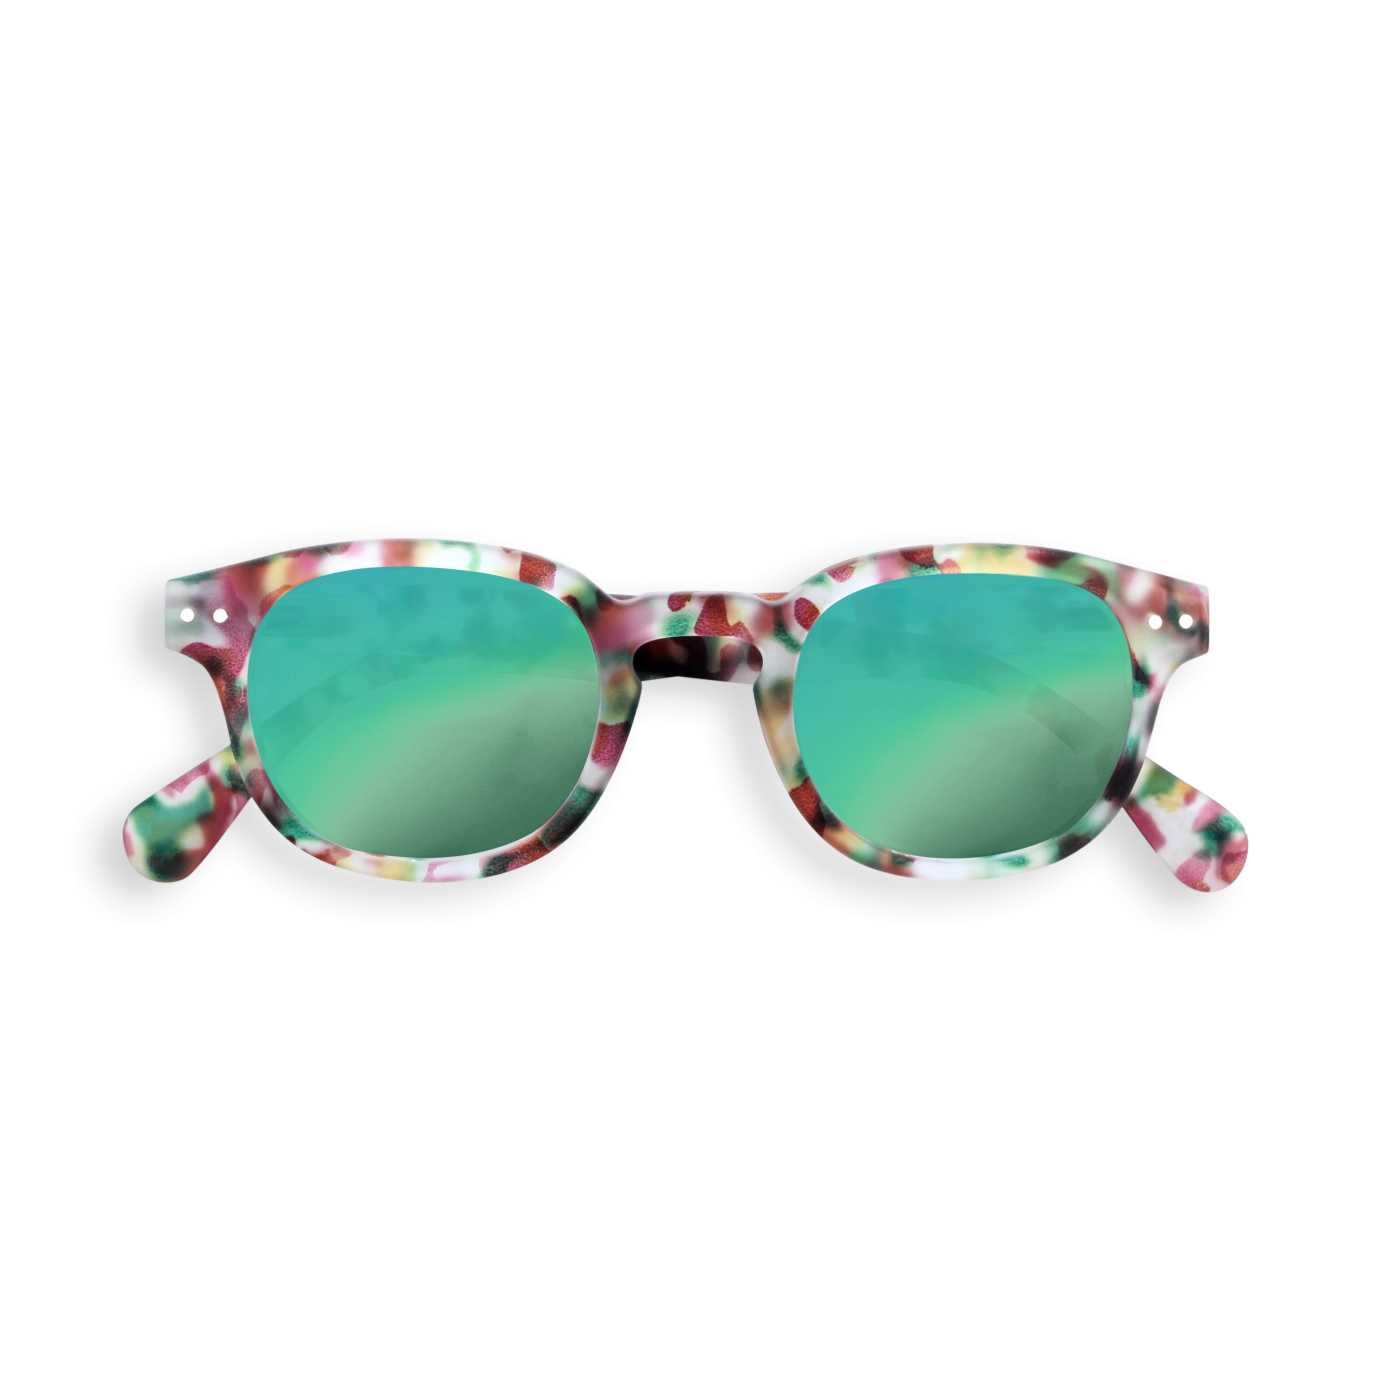 IZIPIZI SUN JUNIOR 3-10 YEARS #C Green Tortoise Mirror